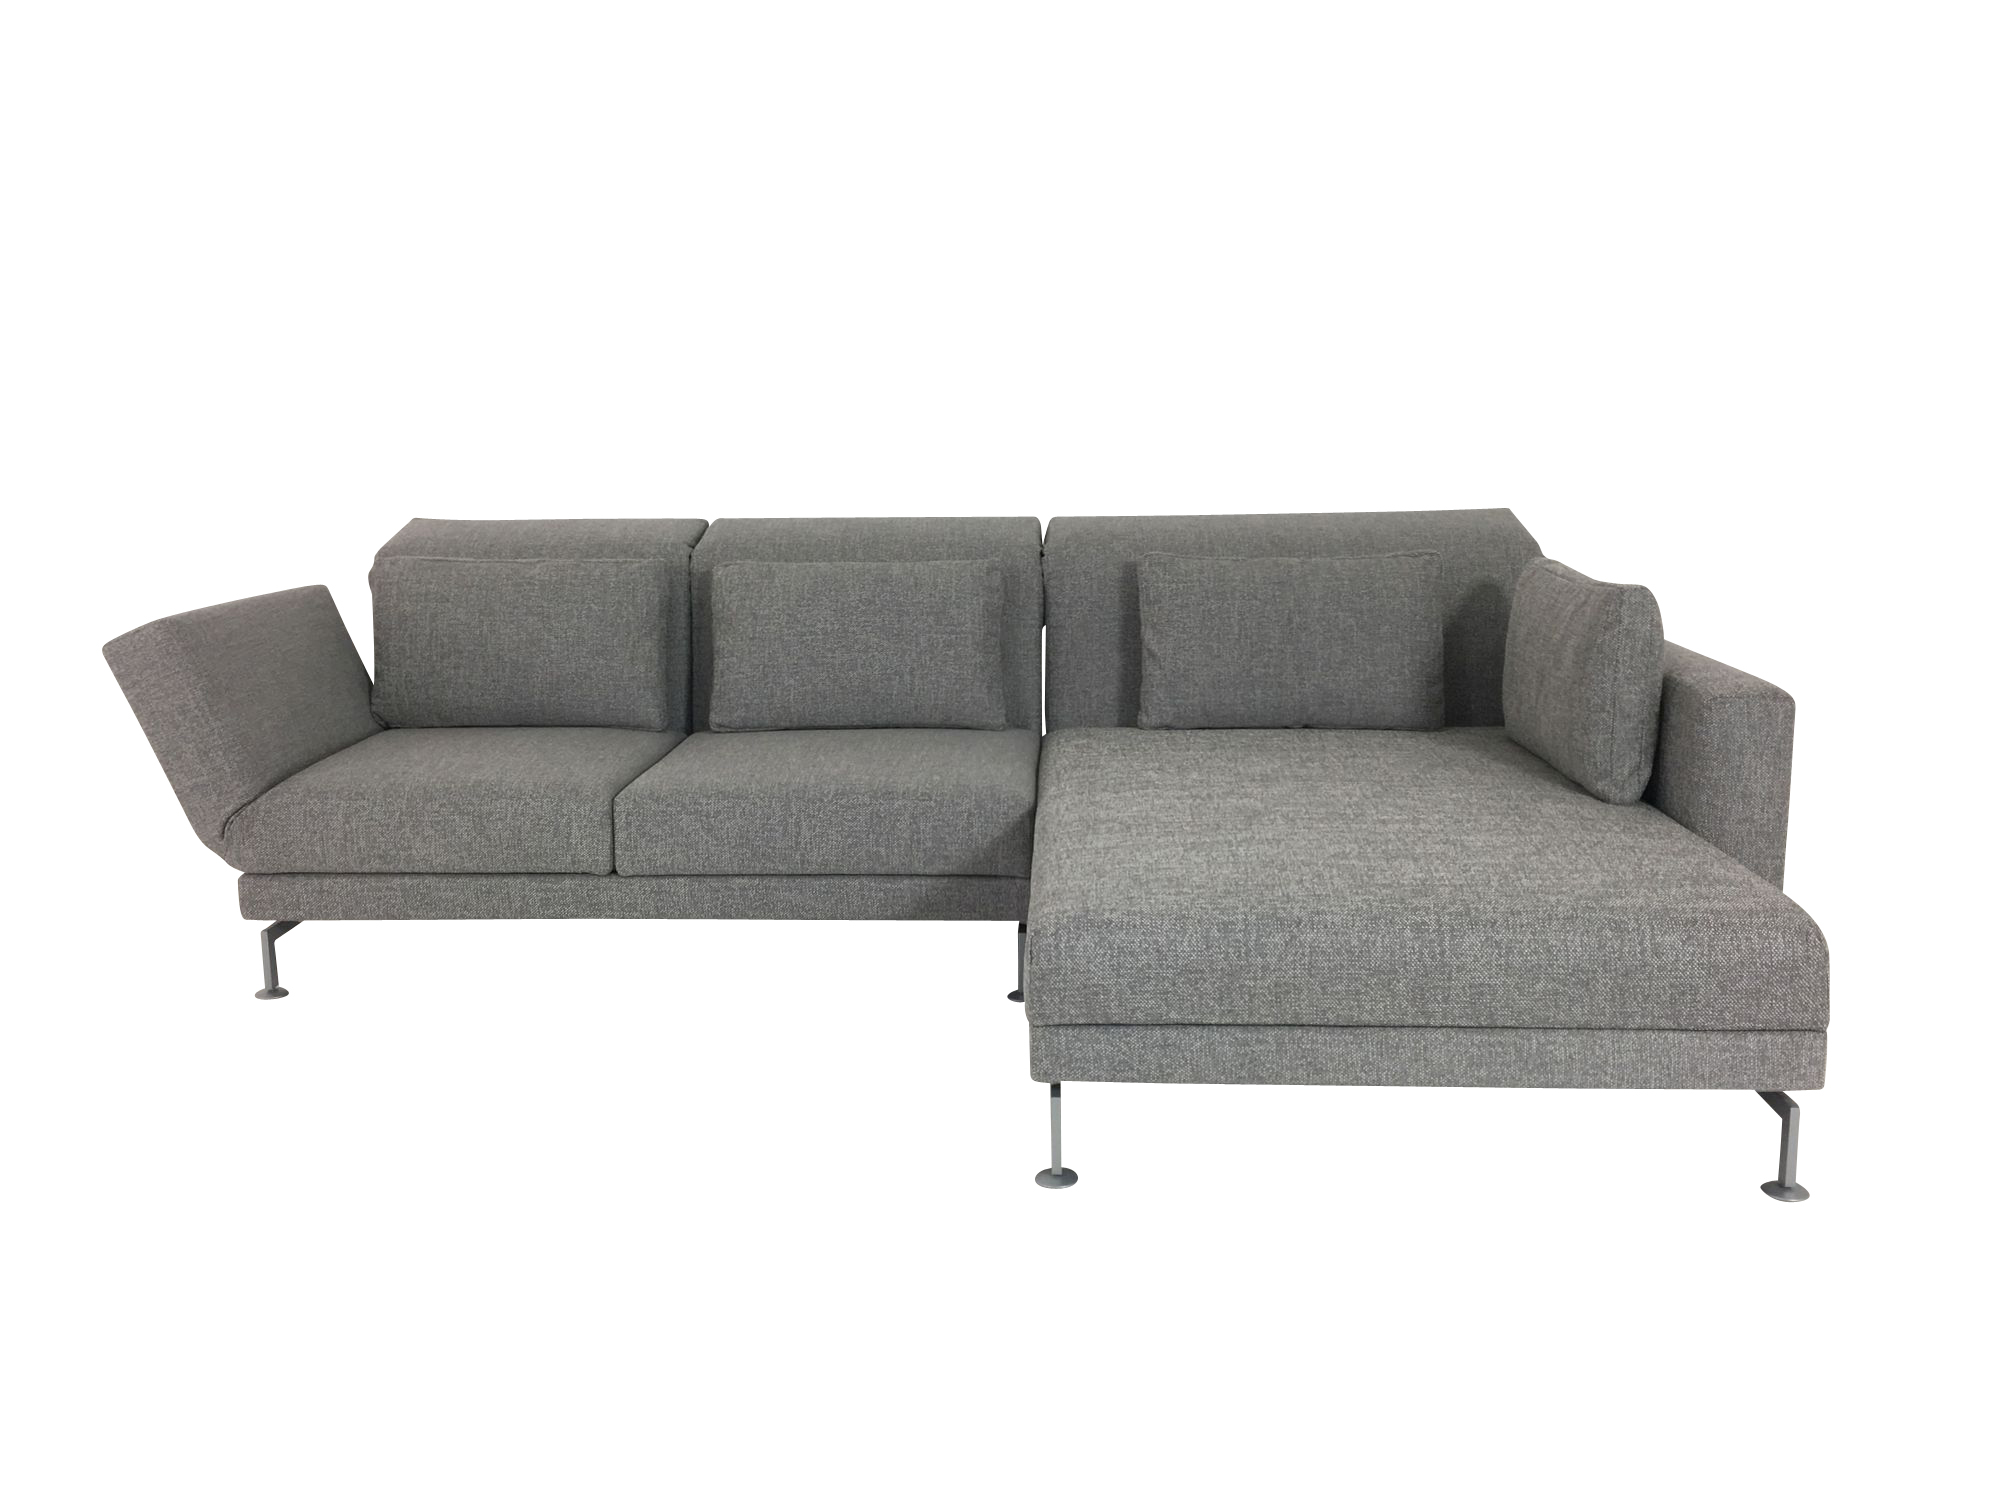 Bettsofas In Berlin Schlafsofa Design Outlet Architektur Designer Couch